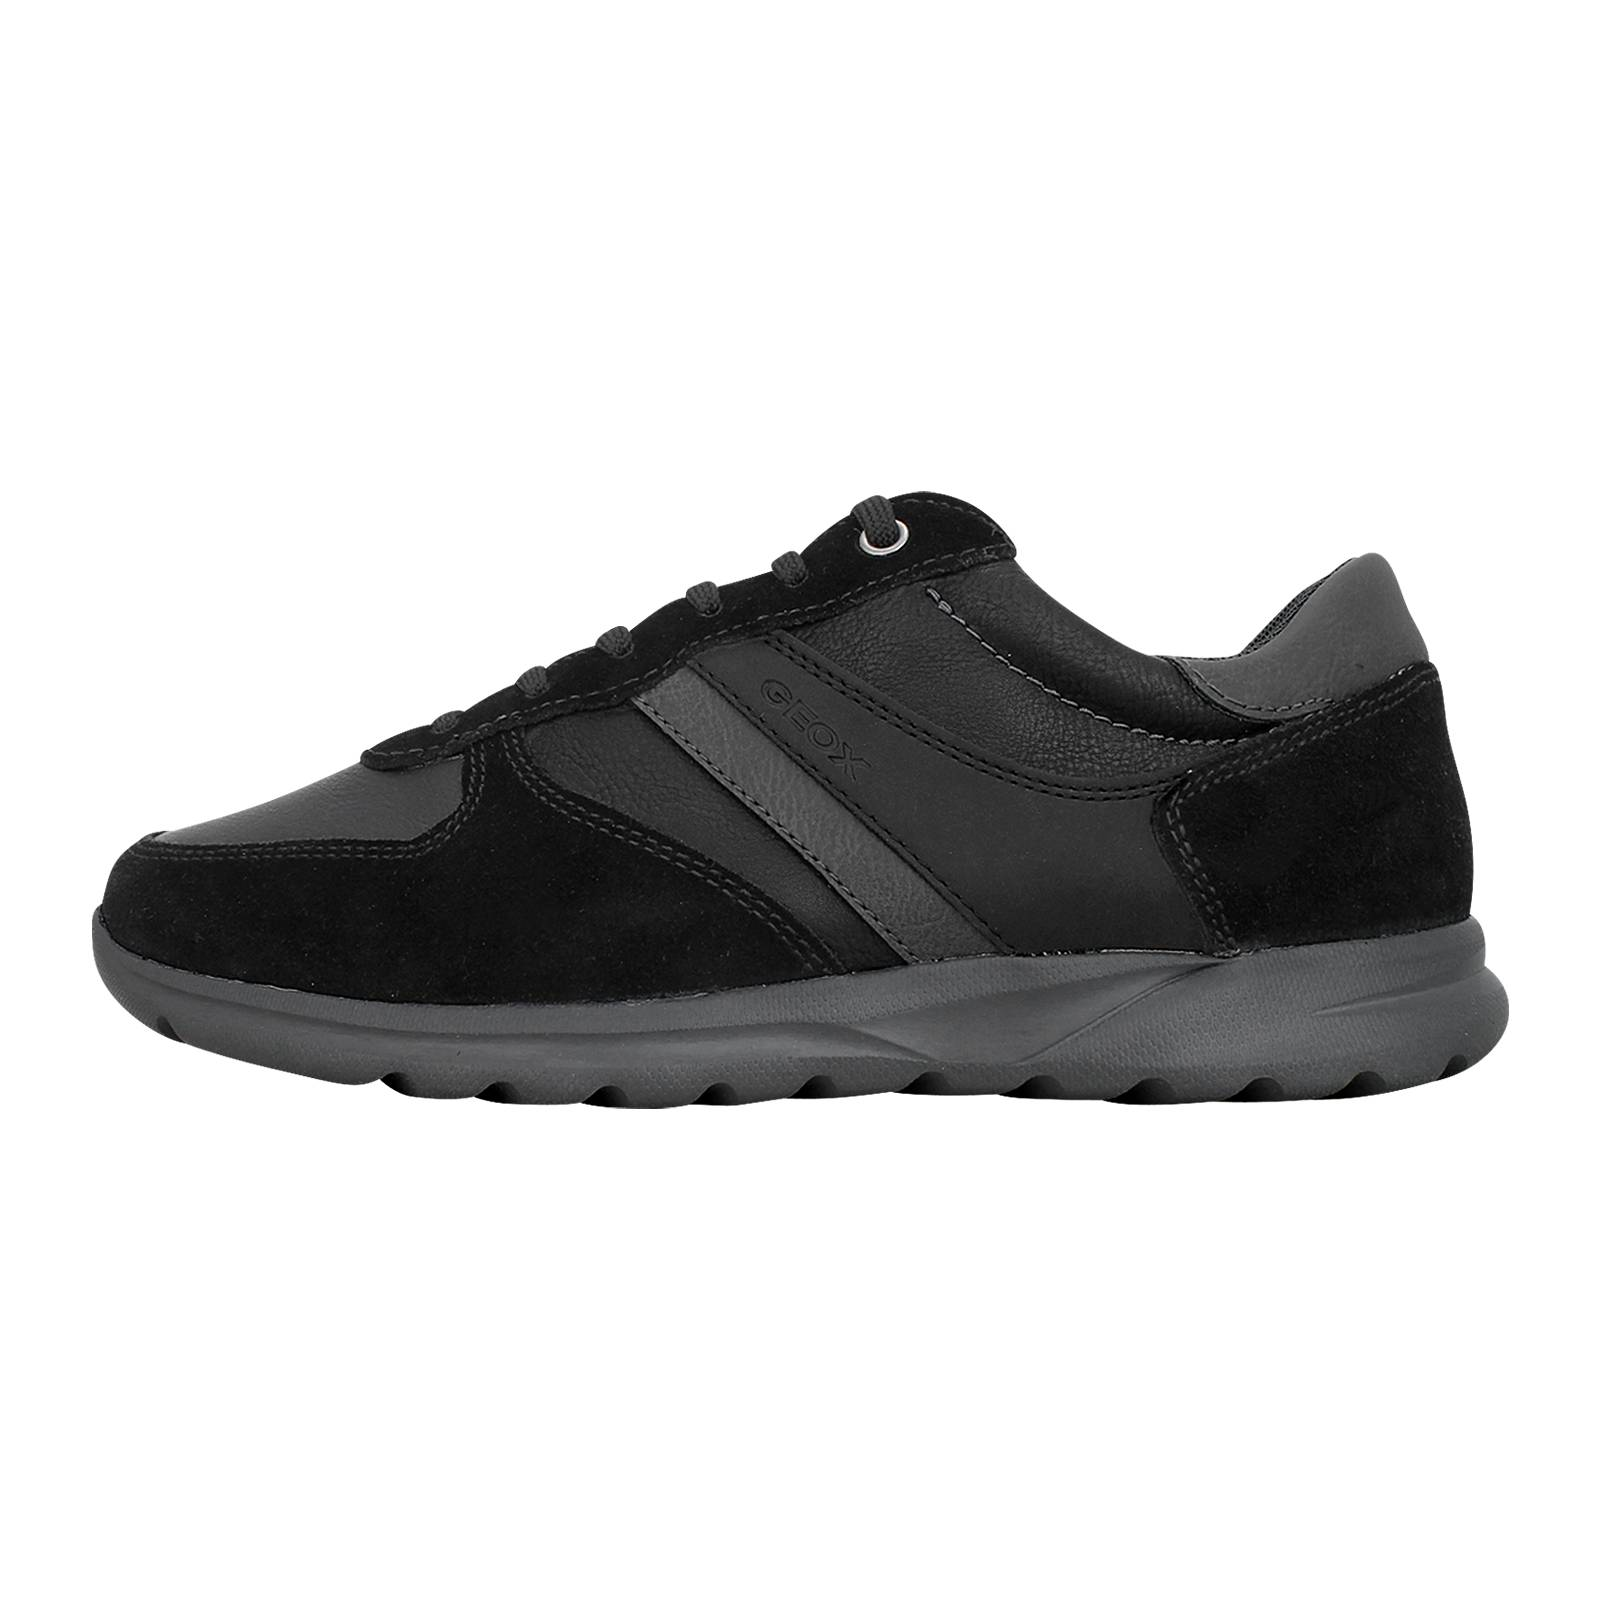 Geox Canoas casual shoes